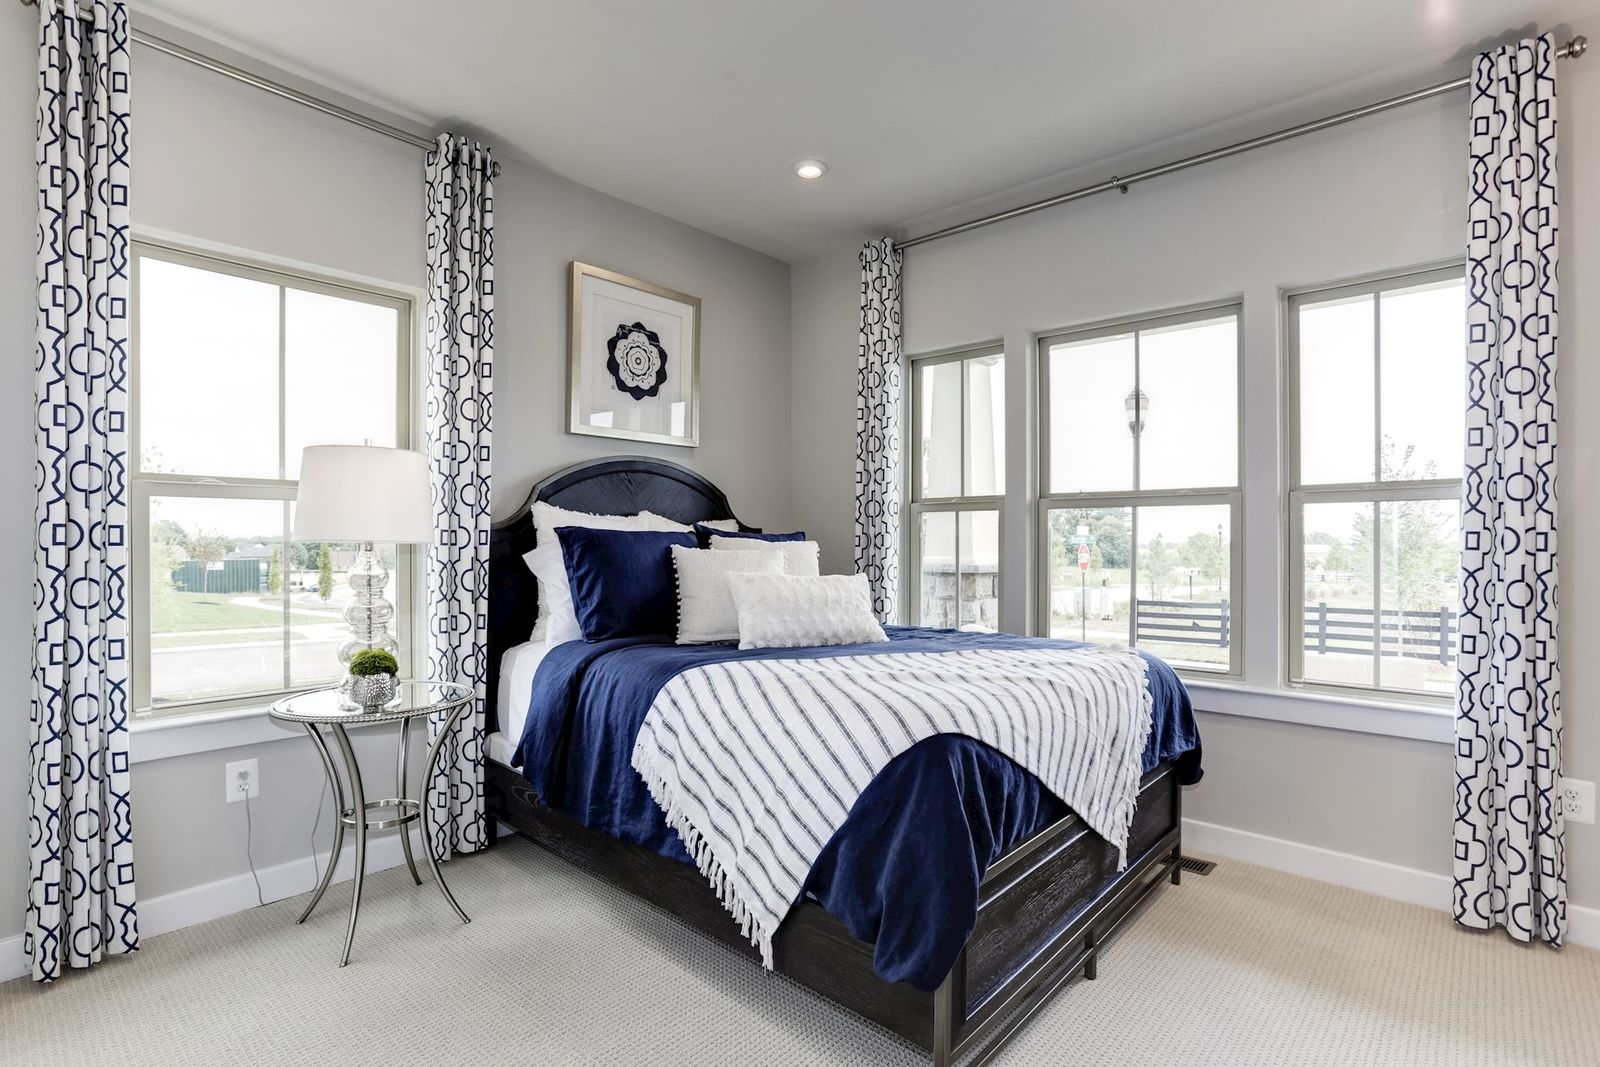 Bedroom featured in the Palladio 2-Story By Ryan Homes in Nashville, TN